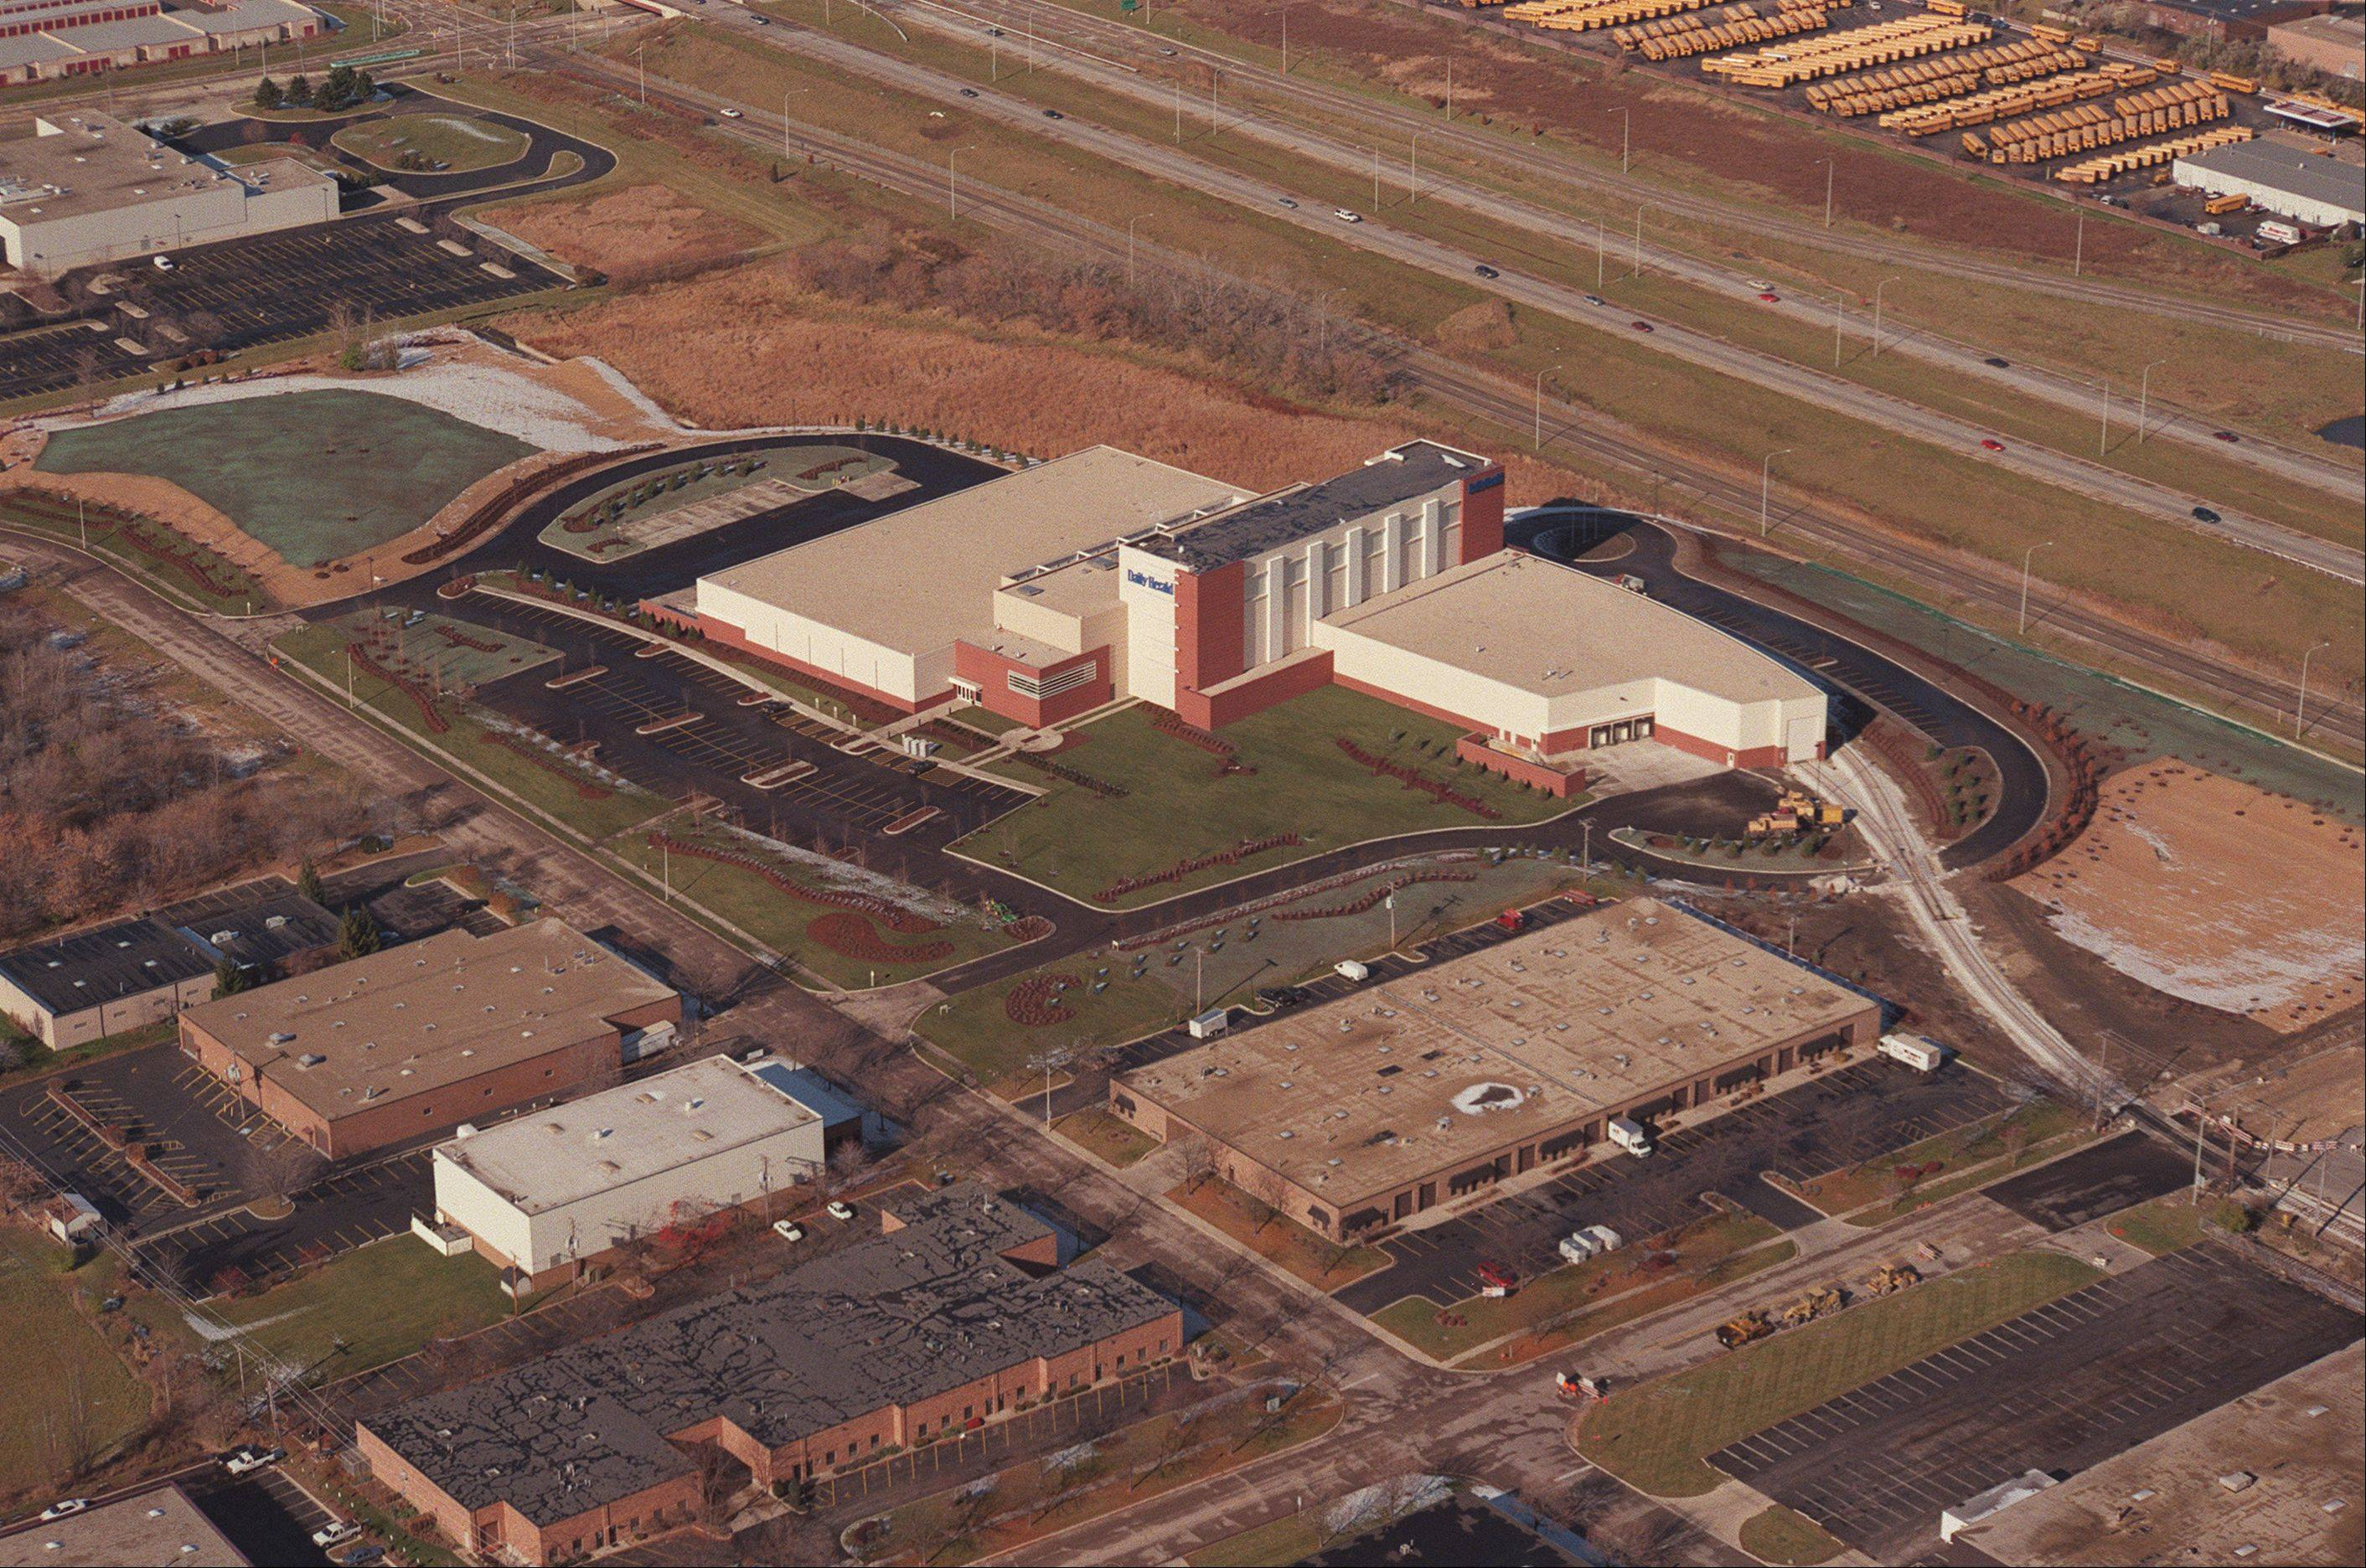 Aerial view of the Paddock Printing Center in Schaumburg.